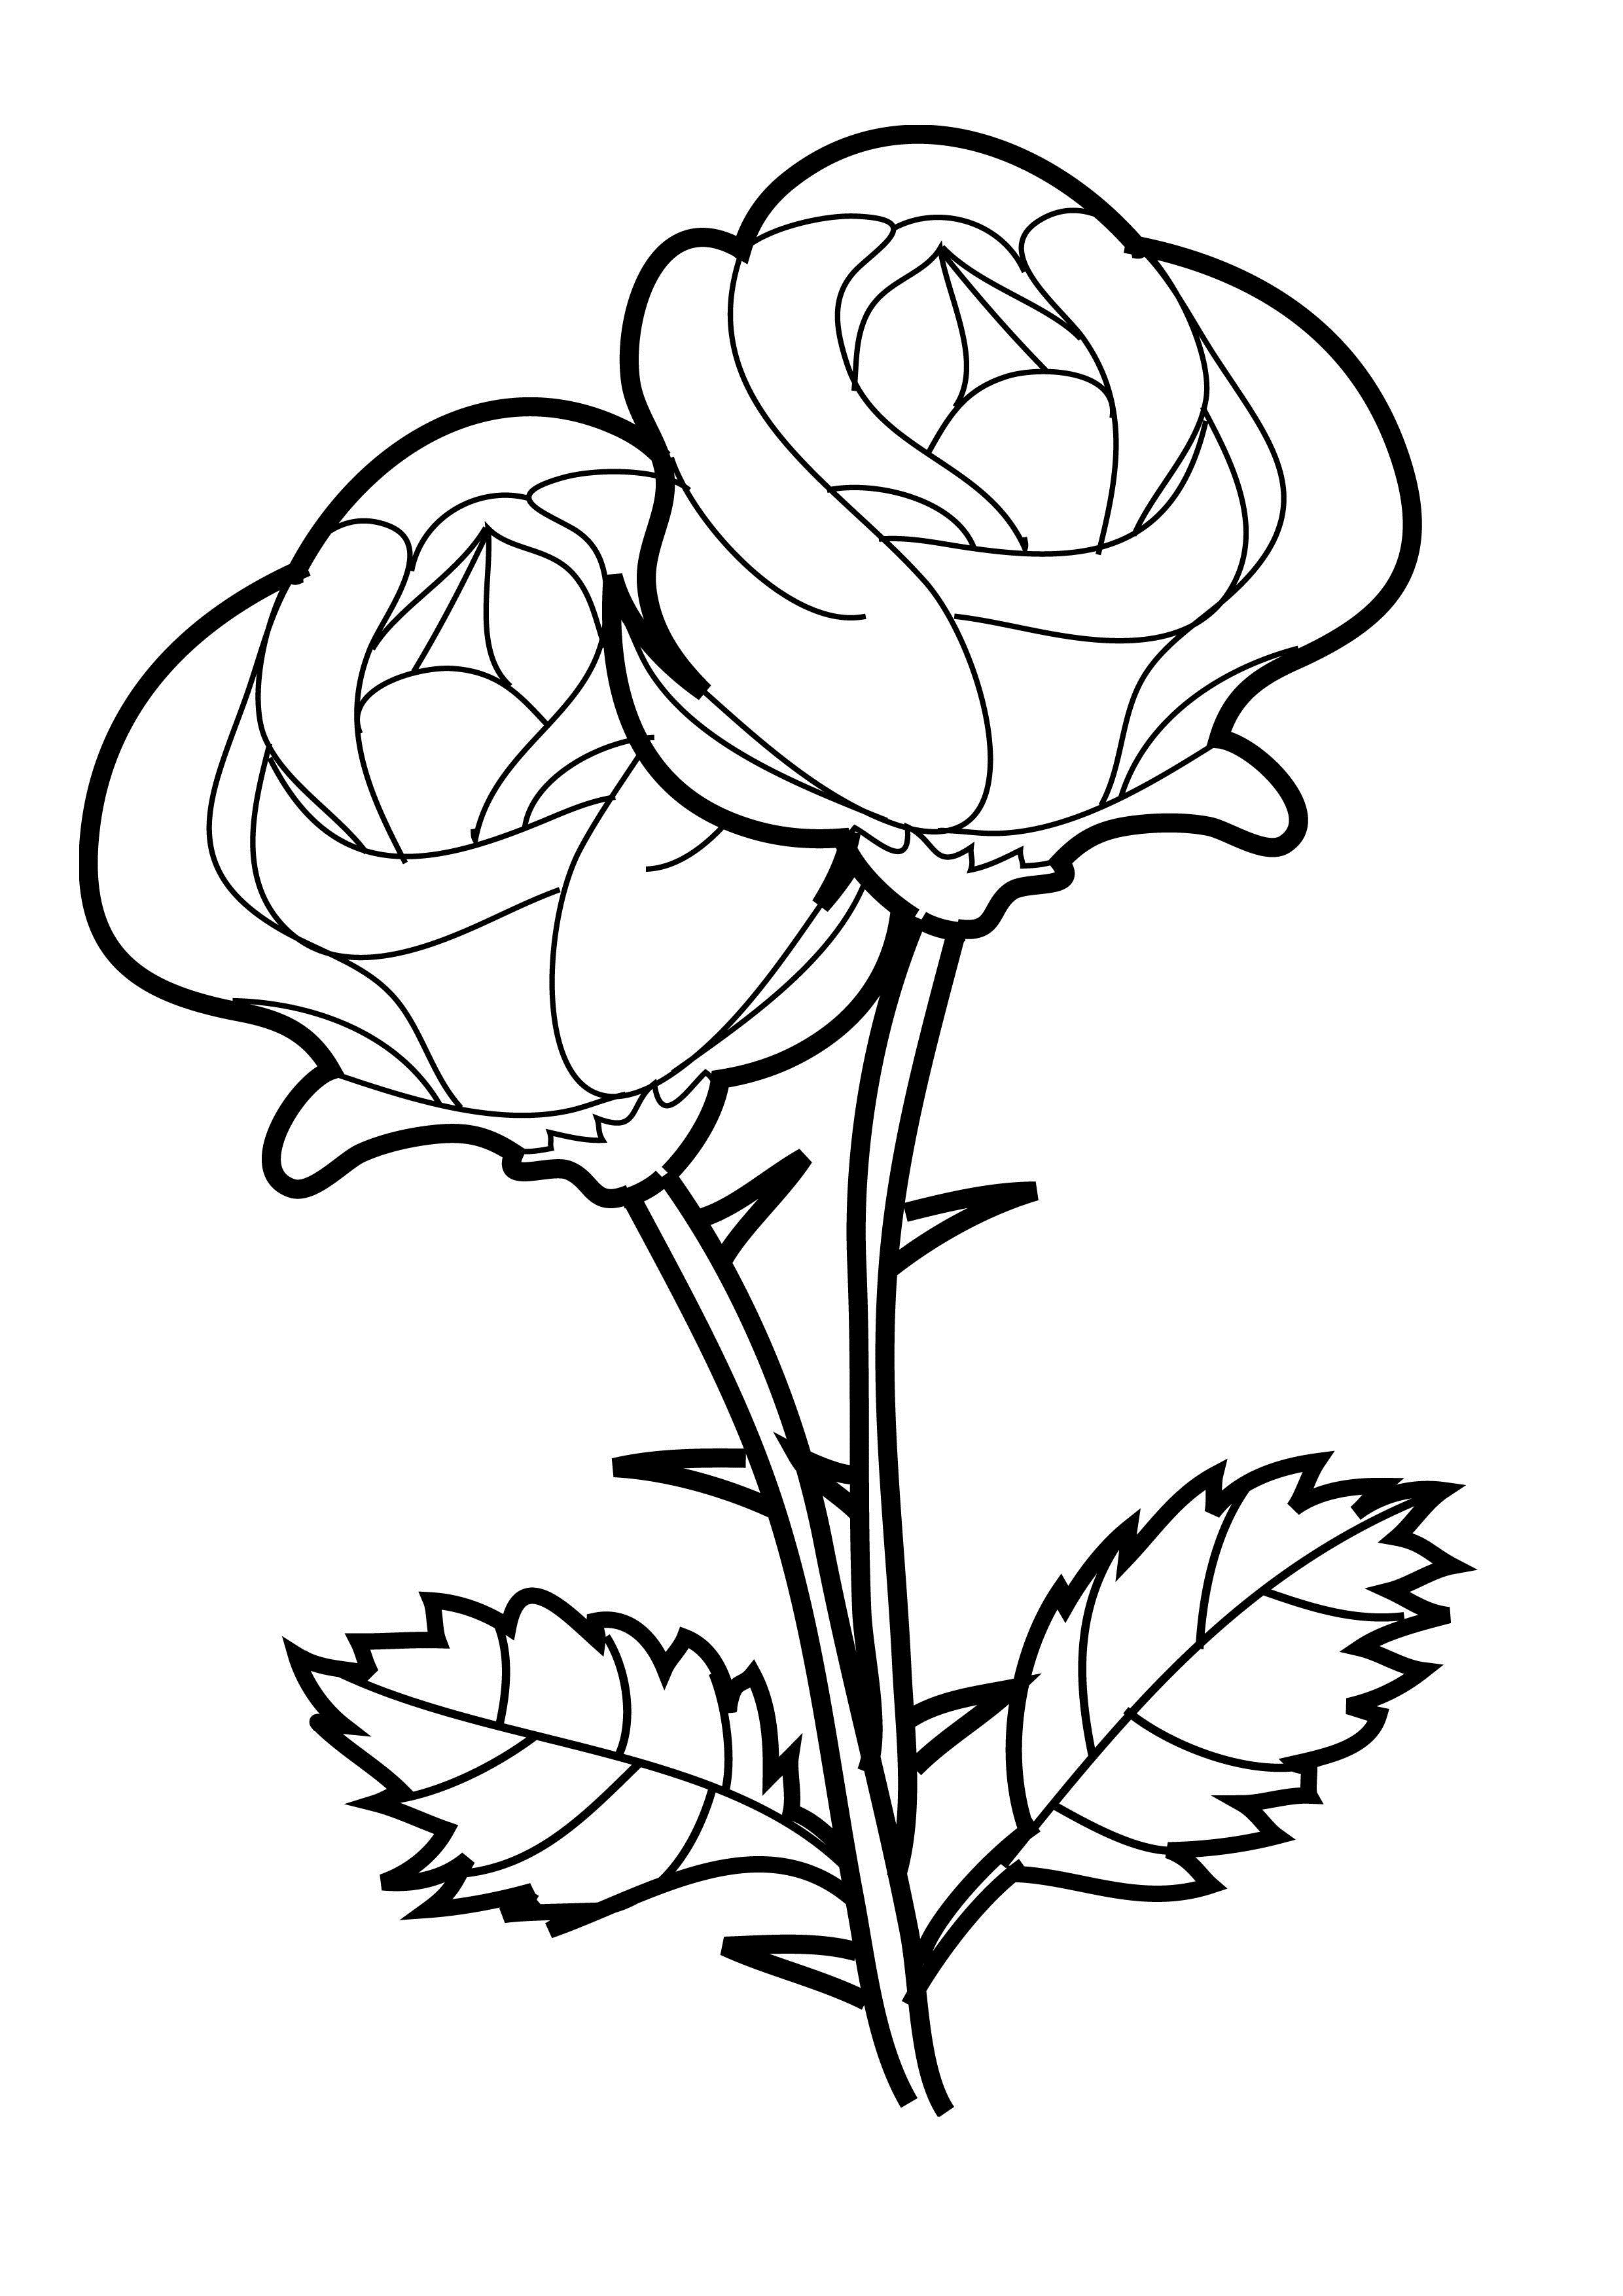 Rose to color